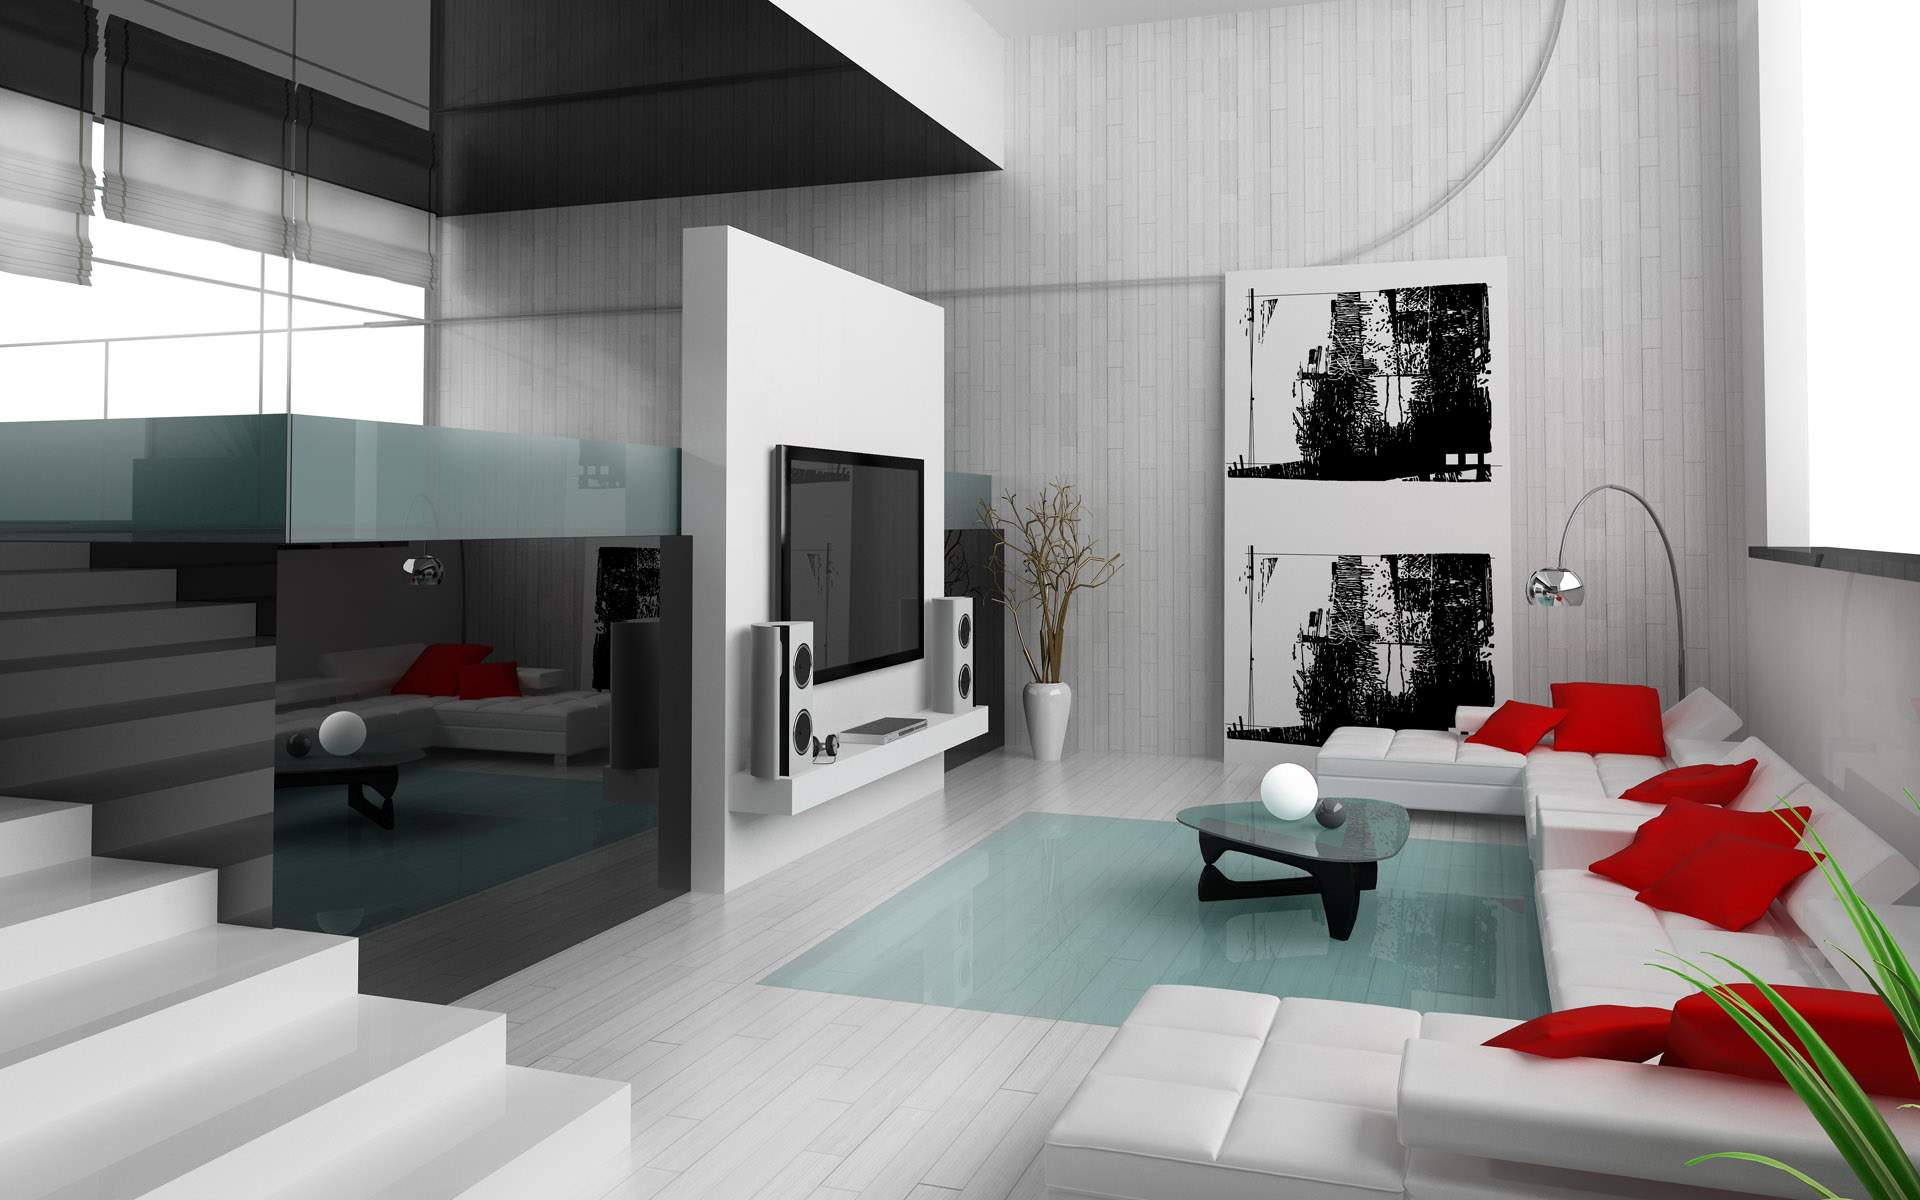 Simple Modern House Interior stunning modern house interior gallery - amazing interior home